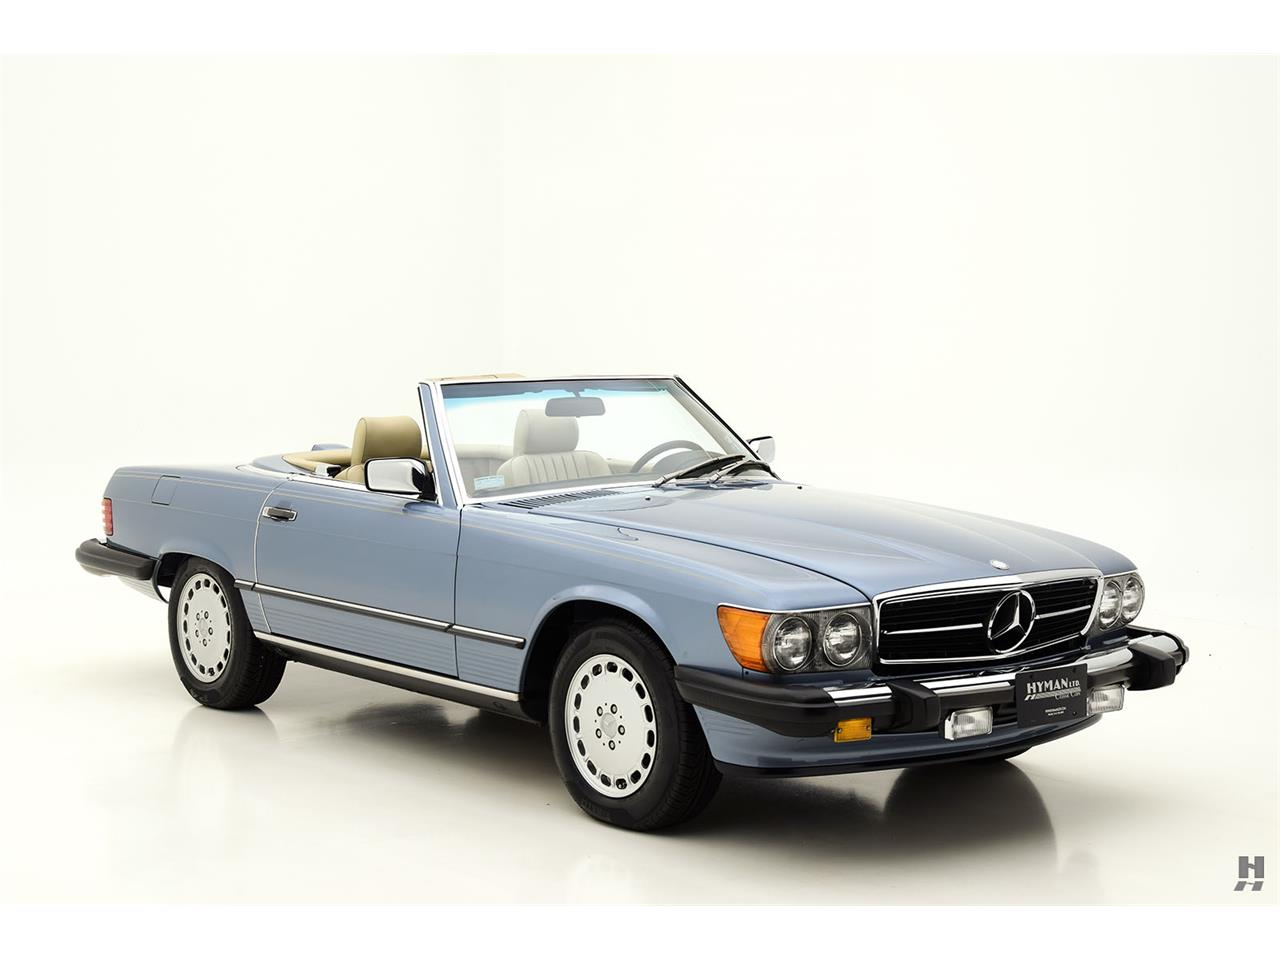 Large Picture of '87 Mercedes-Benz 560SL - $48,500.00 Offered by Hyman Ltd. Classic Cars - LENL